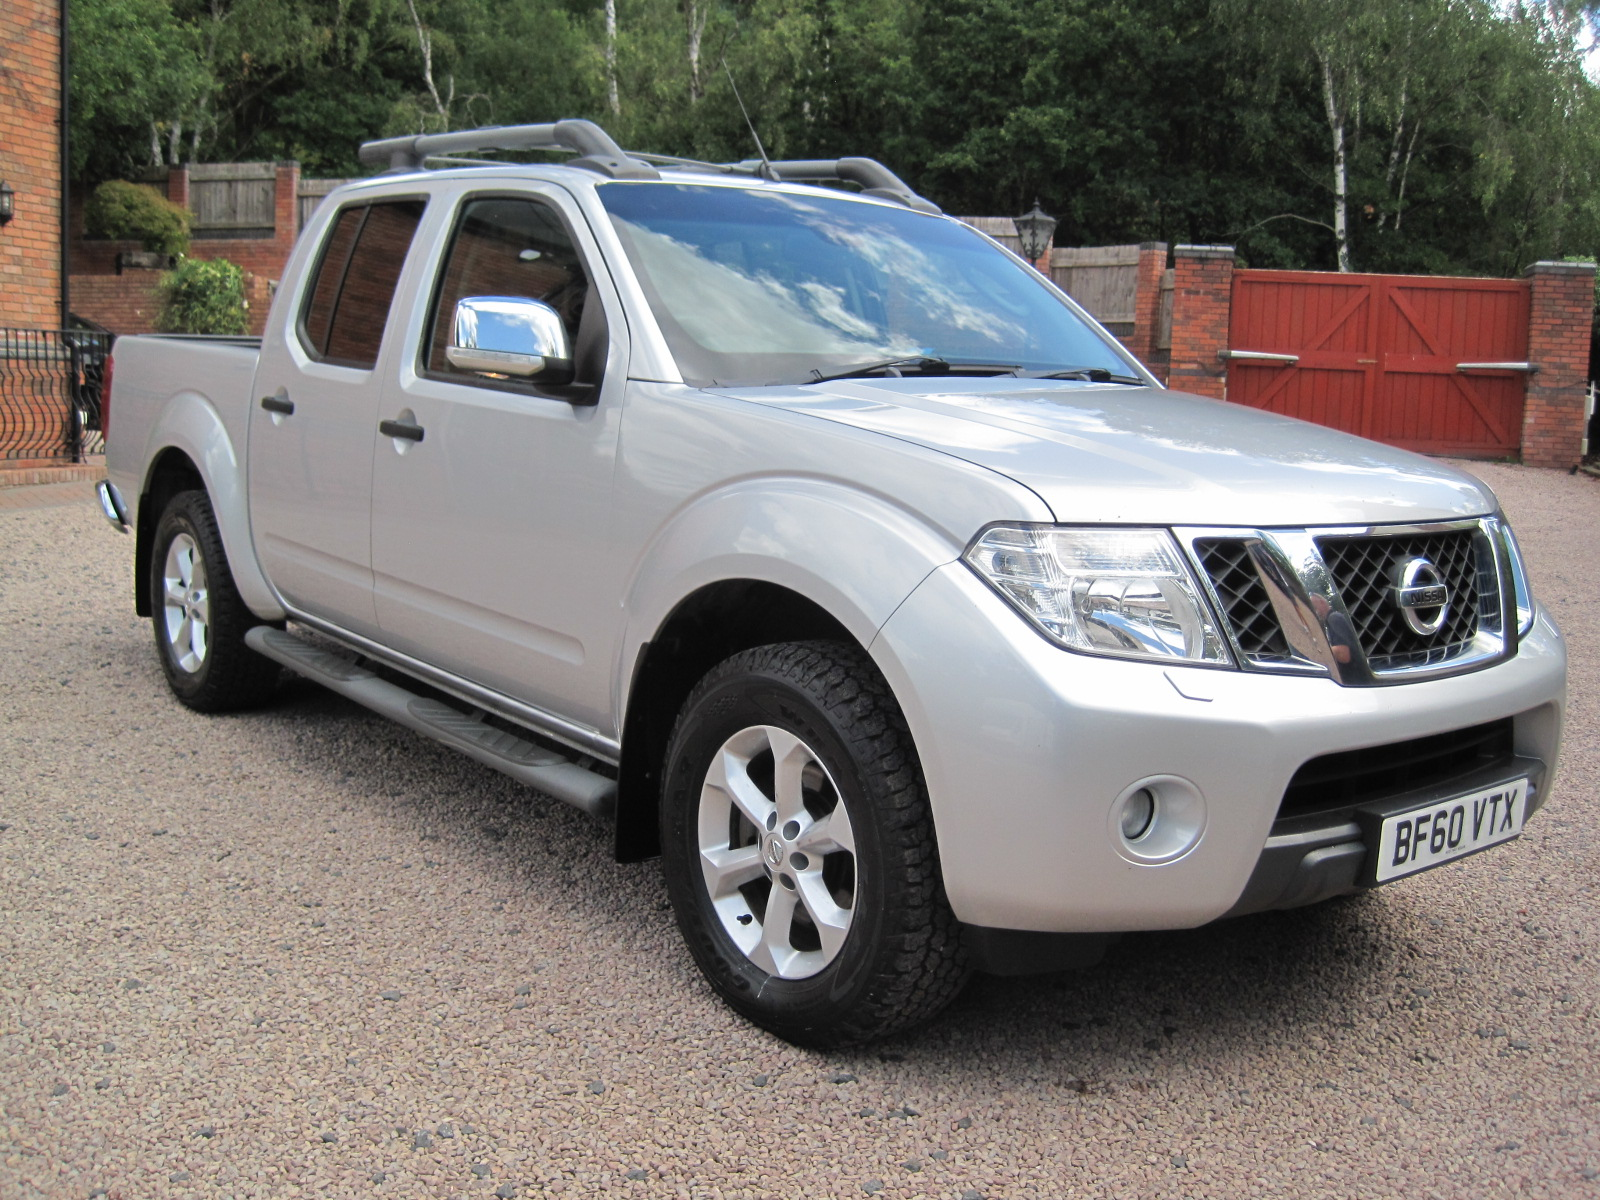 2010 10 Nissan Navara Tekna Premium Connect AUTO 2.5 4WD Double Cab LOW MILES! PRISTINE! ONLY USED AS A CAR! NO VAT!